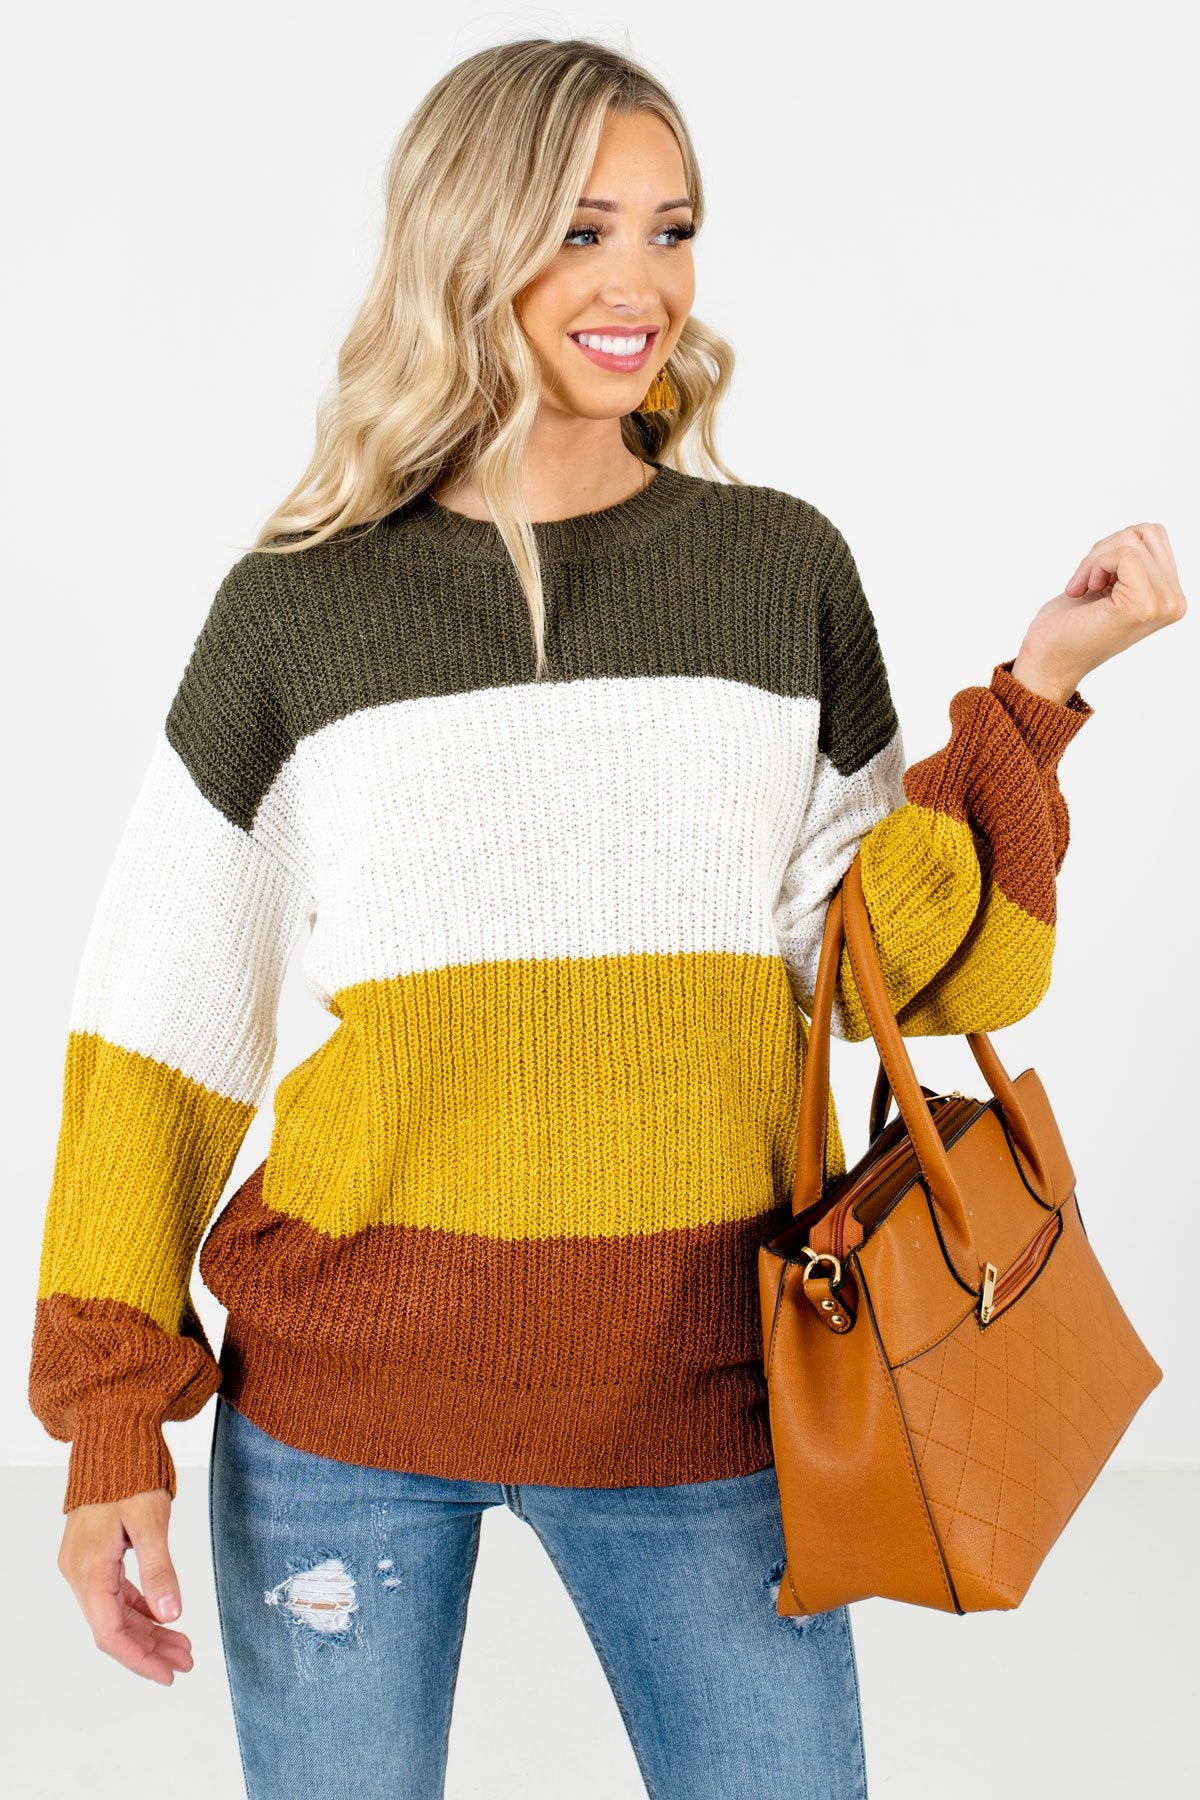 Mustard Yellow Color Block Striped Patterned Boutique Sweaters for Women